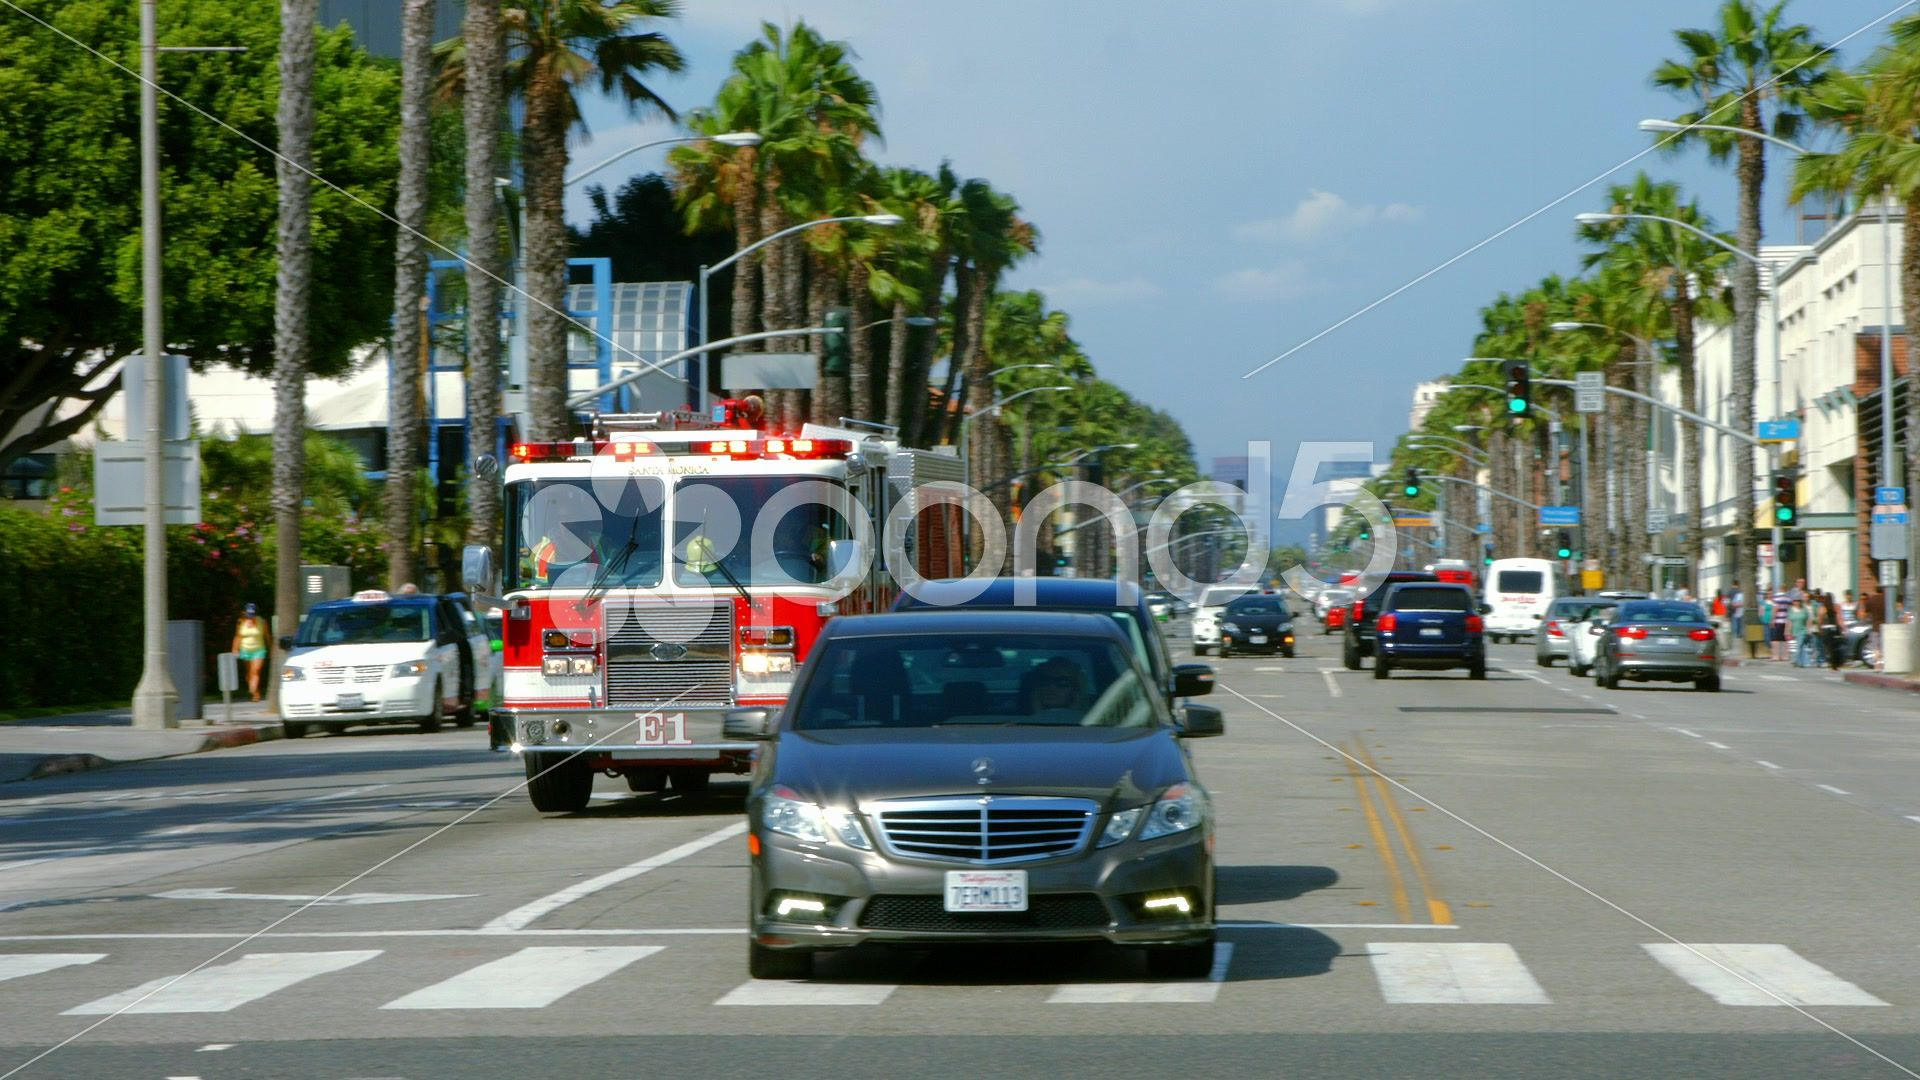 Los Angeles Fire Department On Wilshire Blvd Blackmagic 4k Production Camera Stock Footage Ad Depar In 2020 Los Angeles Fire Department Fire Department Los Angeles